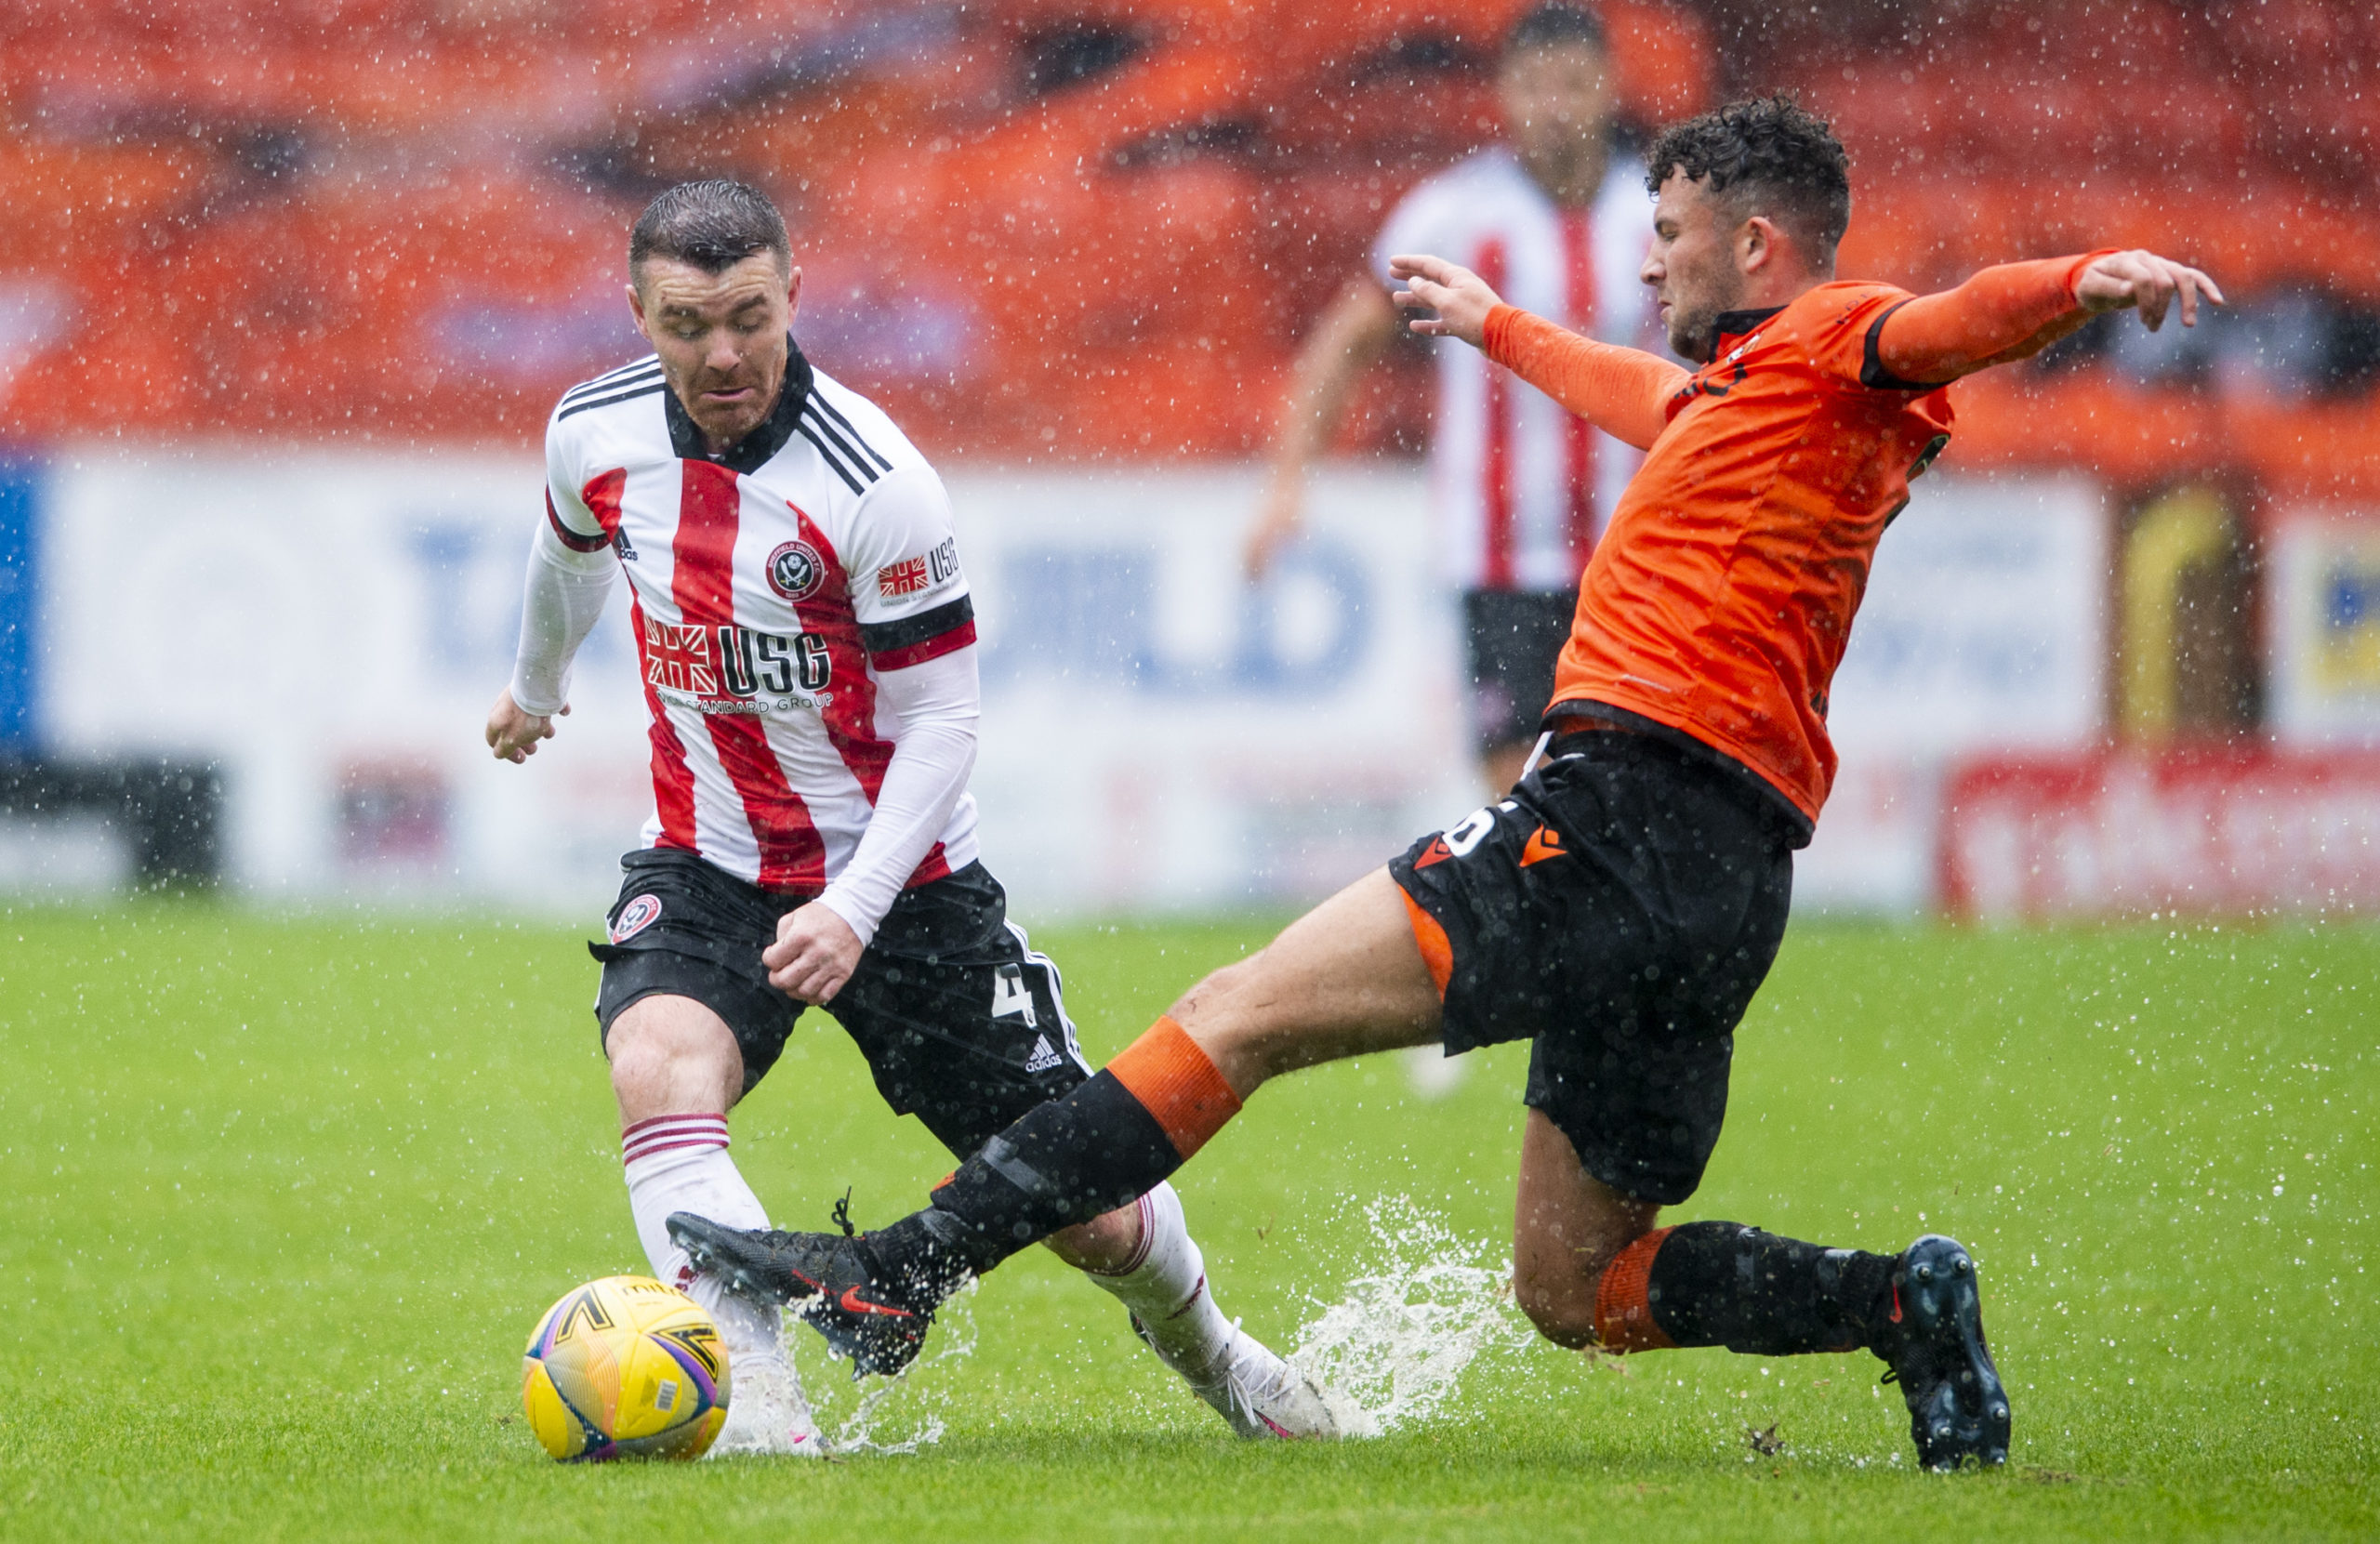 United defender Nathan Cooney challenges Sheffield United and Scotland midfielder John Fleck at a wet and windy Tannadice.